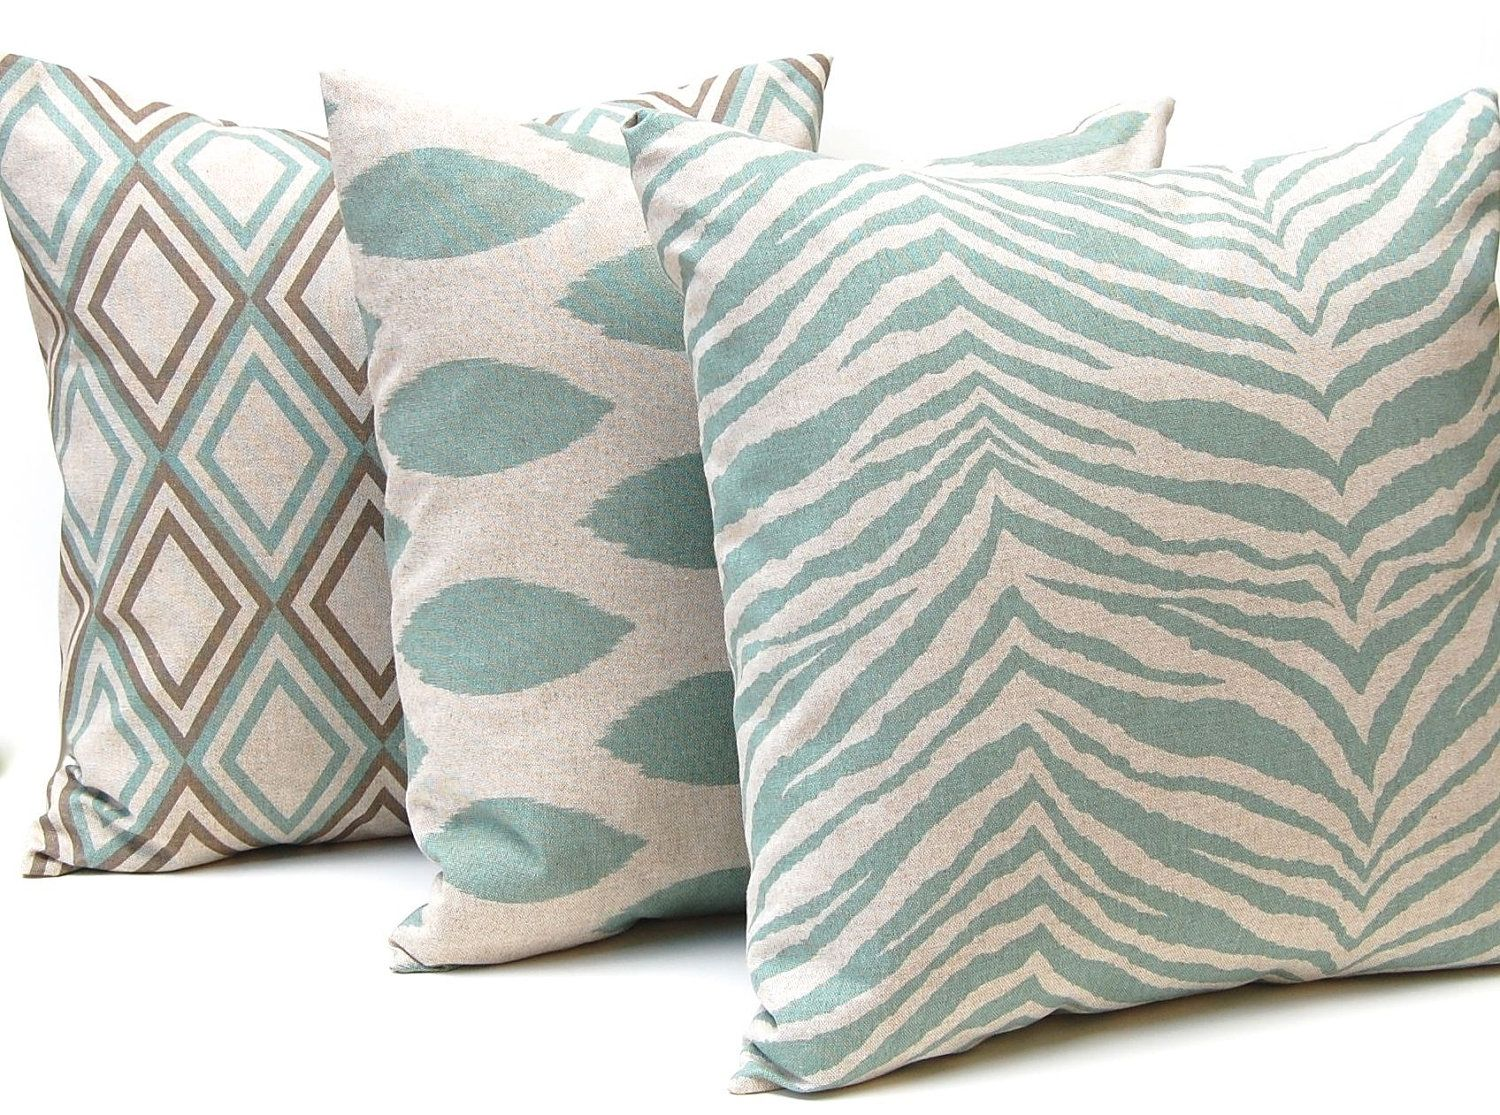 decorative throw pillow covers for 20 x 20 pillows cushion covers decorative throw pillow covers for 20 x 20 pillows cushion covers seafoam green on linen three